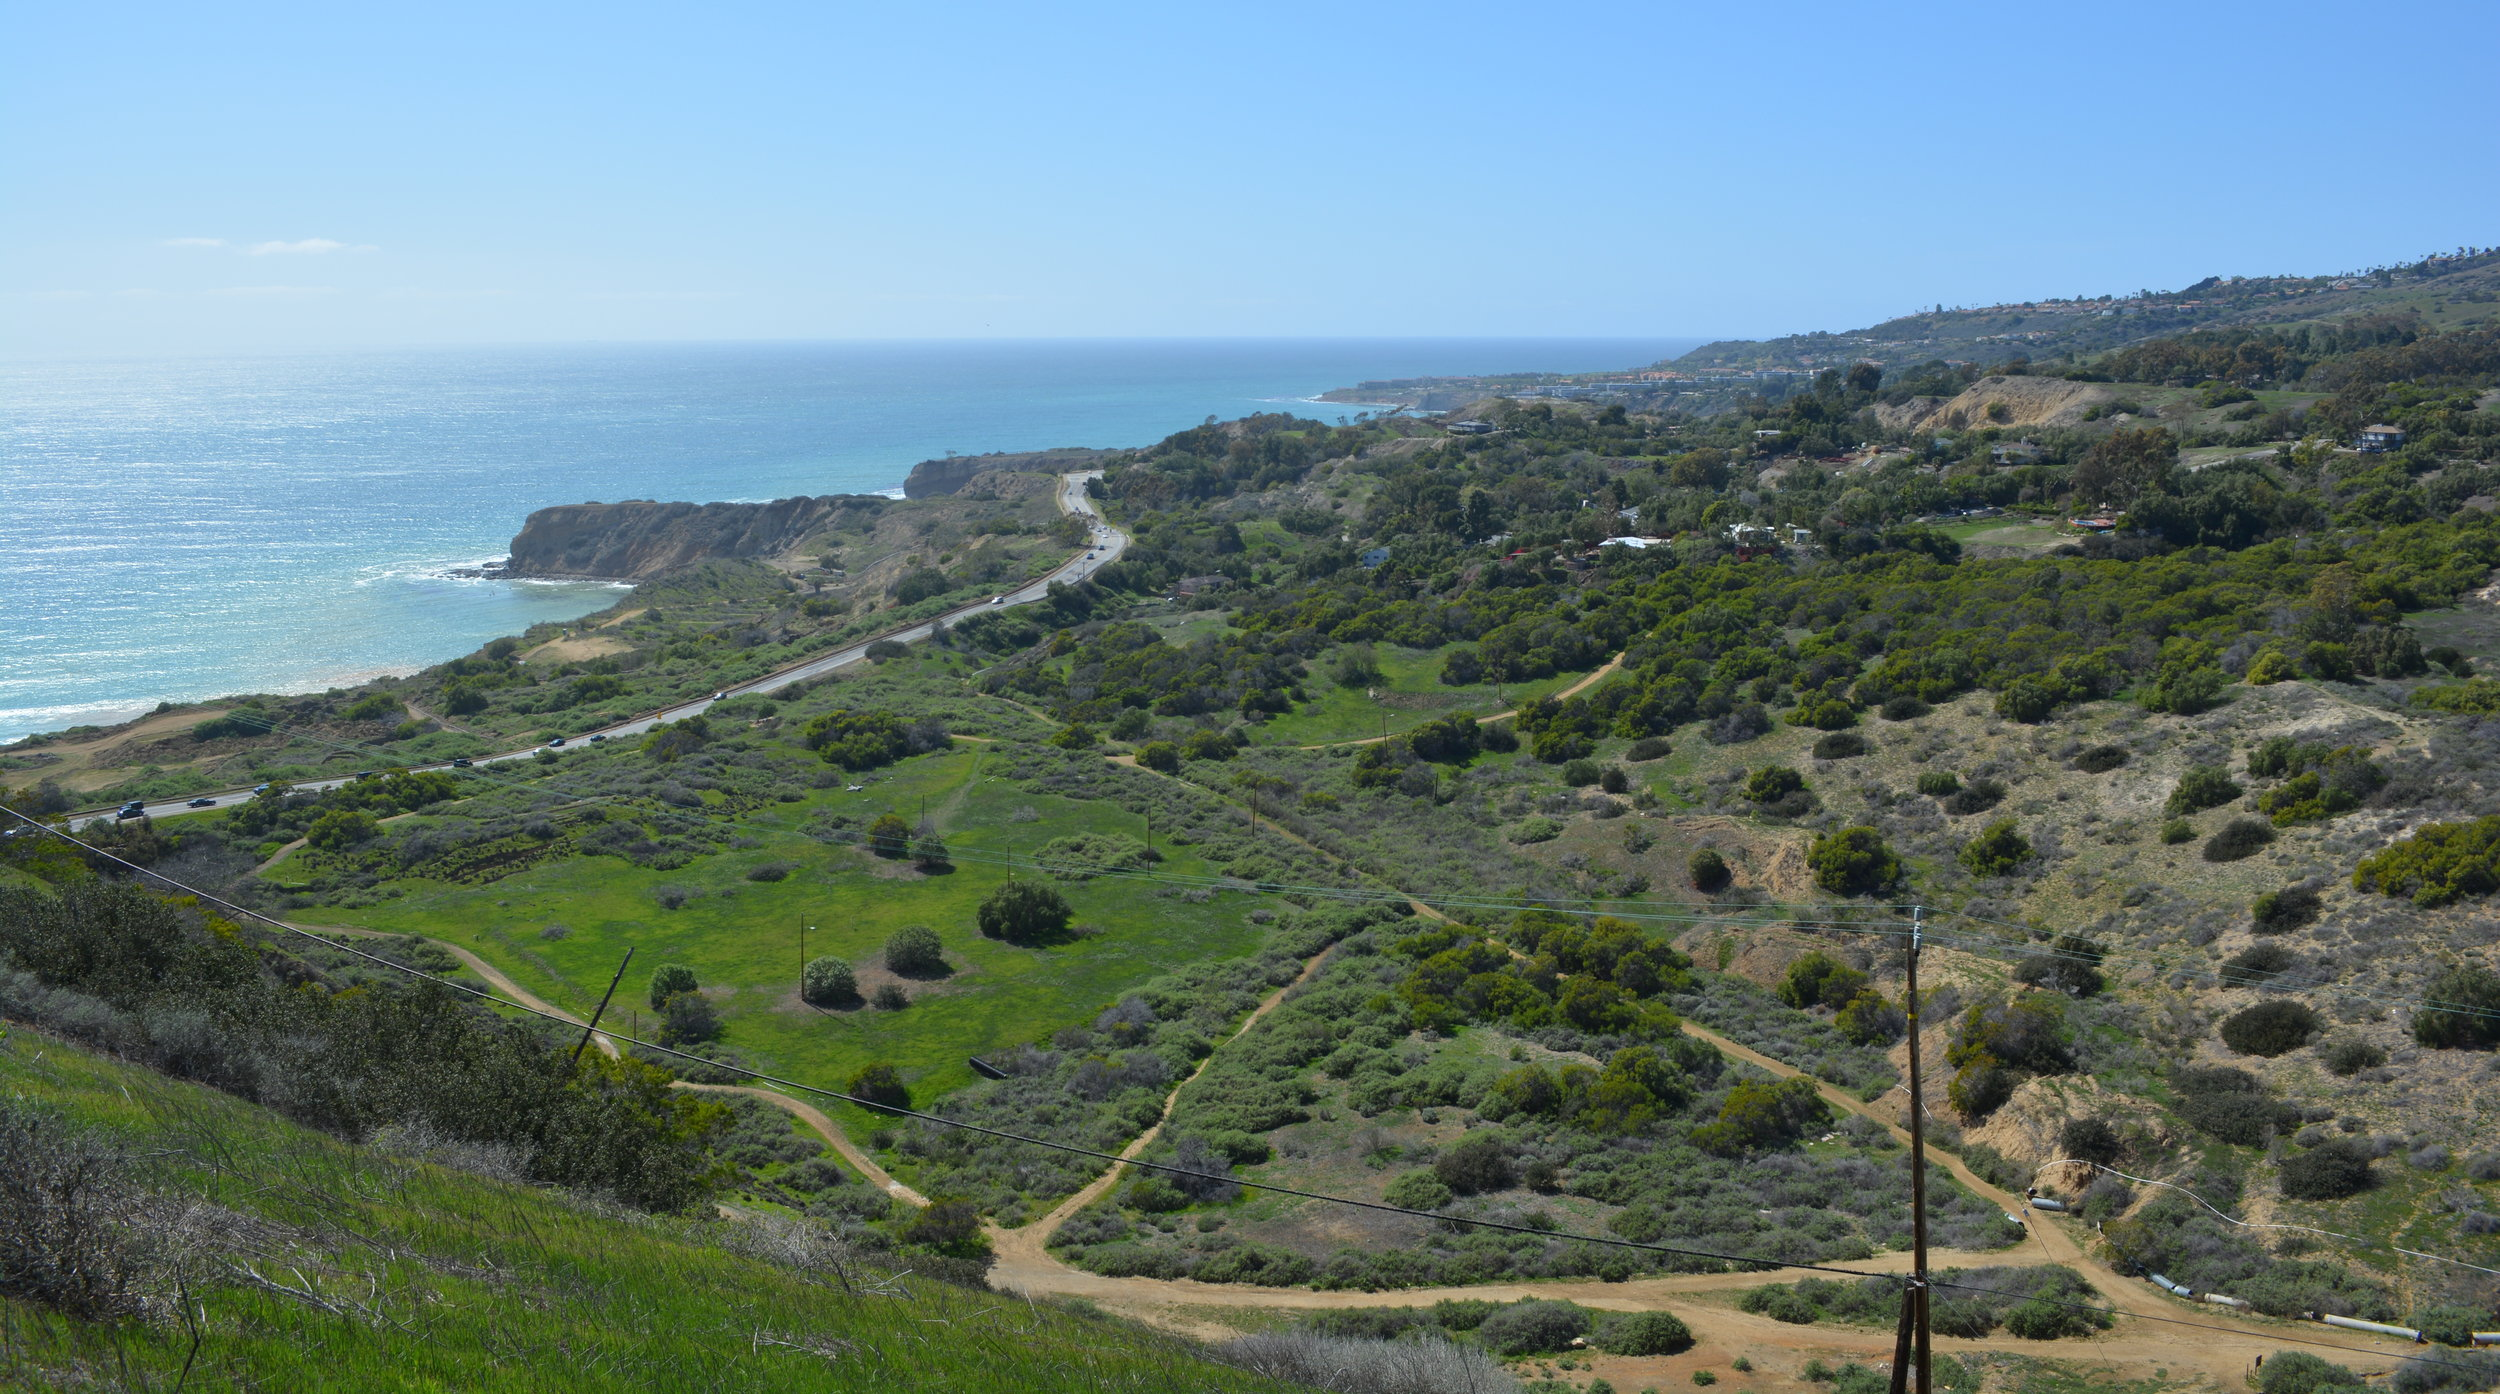 Portuguese_Bend_Landslide_and_Nature_Preserve,_Rancho_Palos_Verdes,_California.jpg